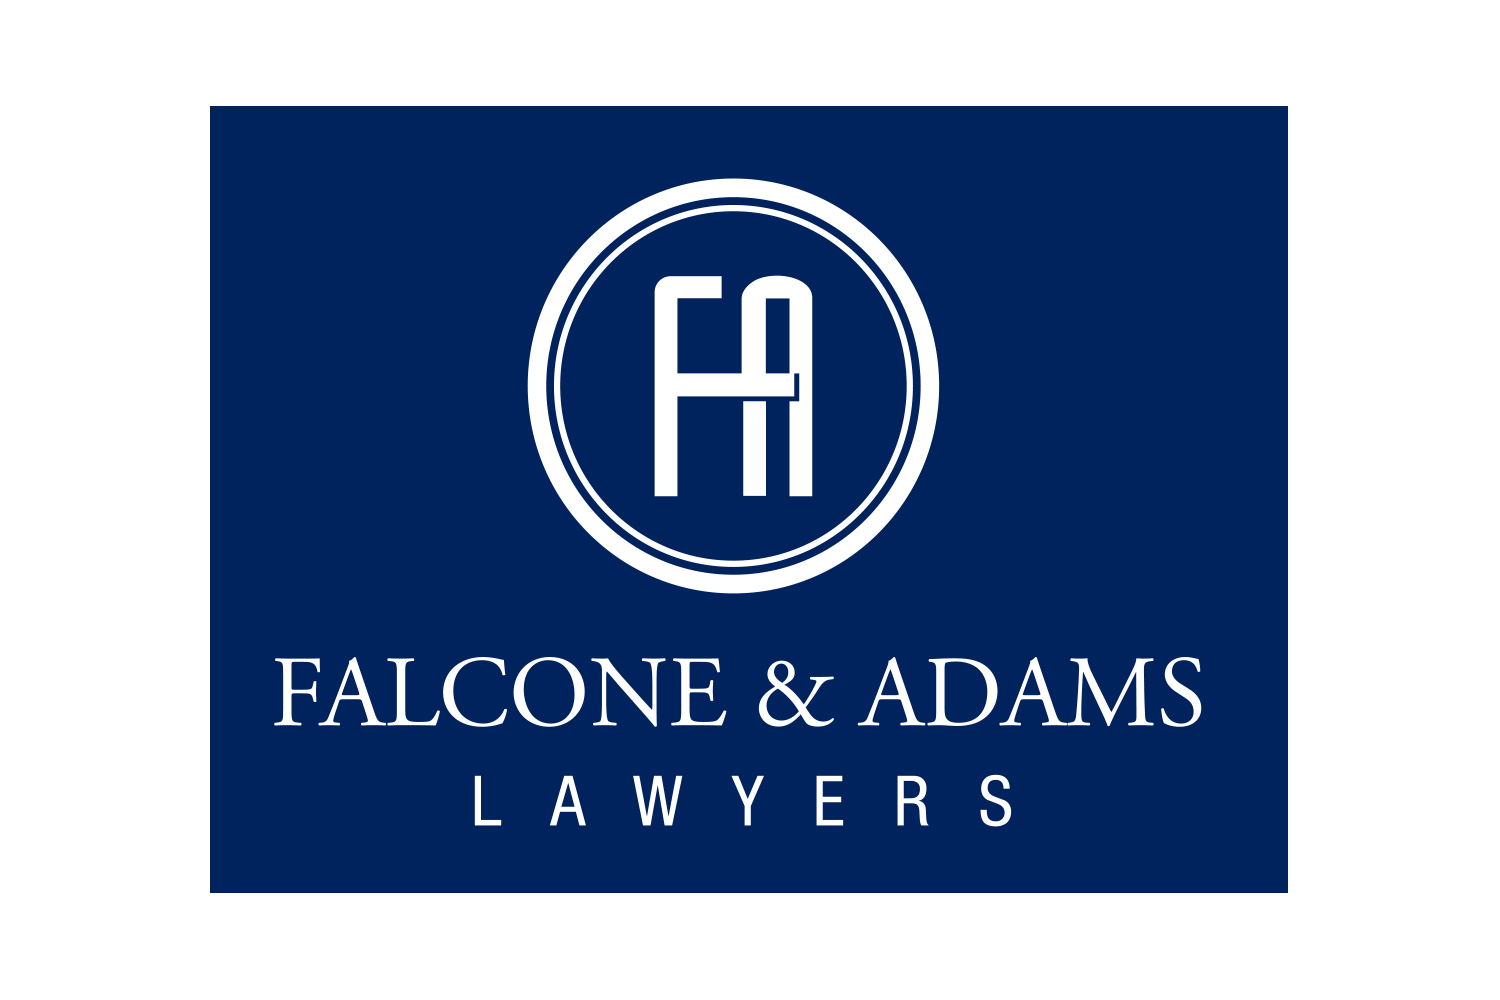 Falcone & Adams Lawyers